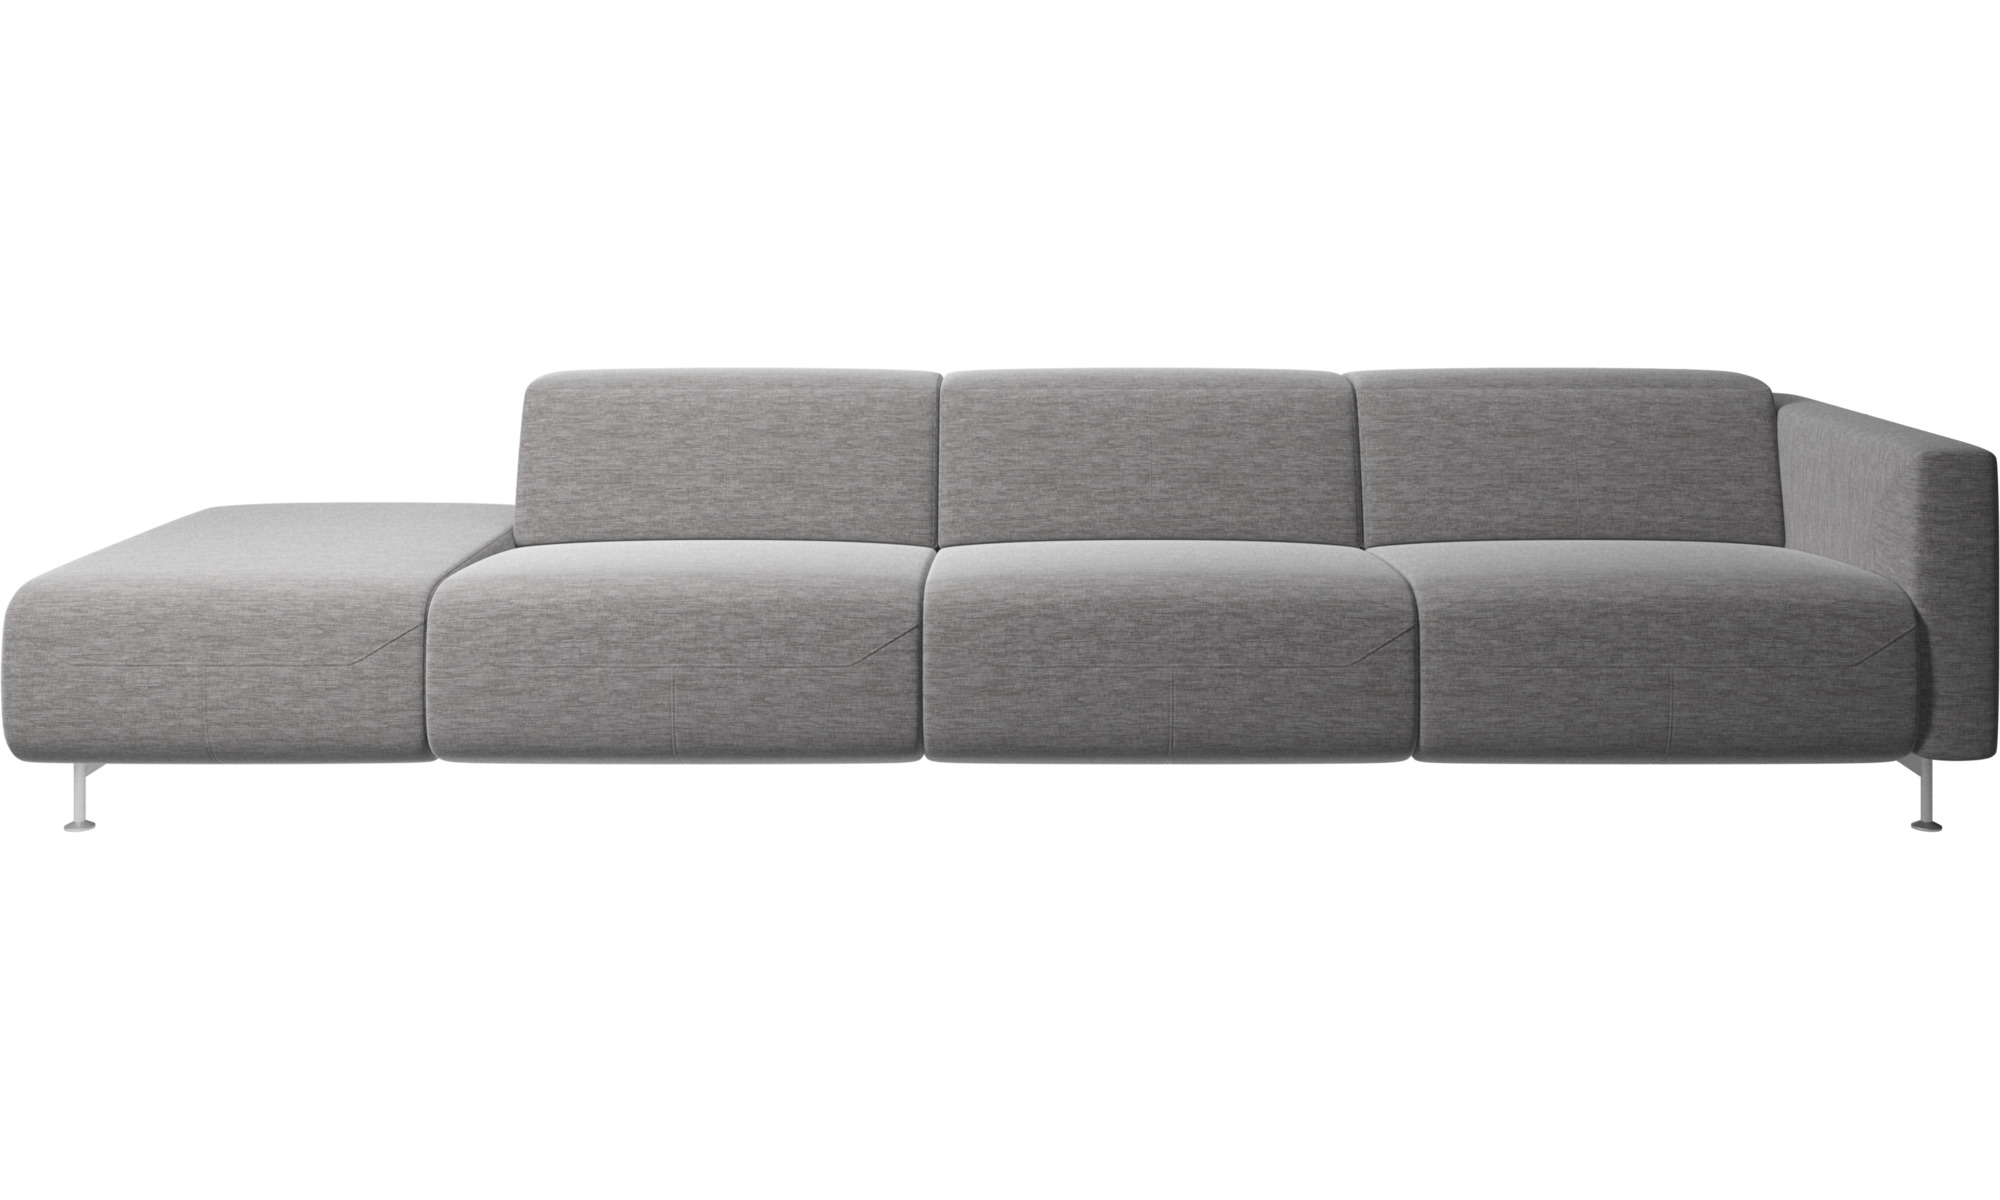 Recliner sofas - Parma reclining sofa with open end - Grey - Fabric